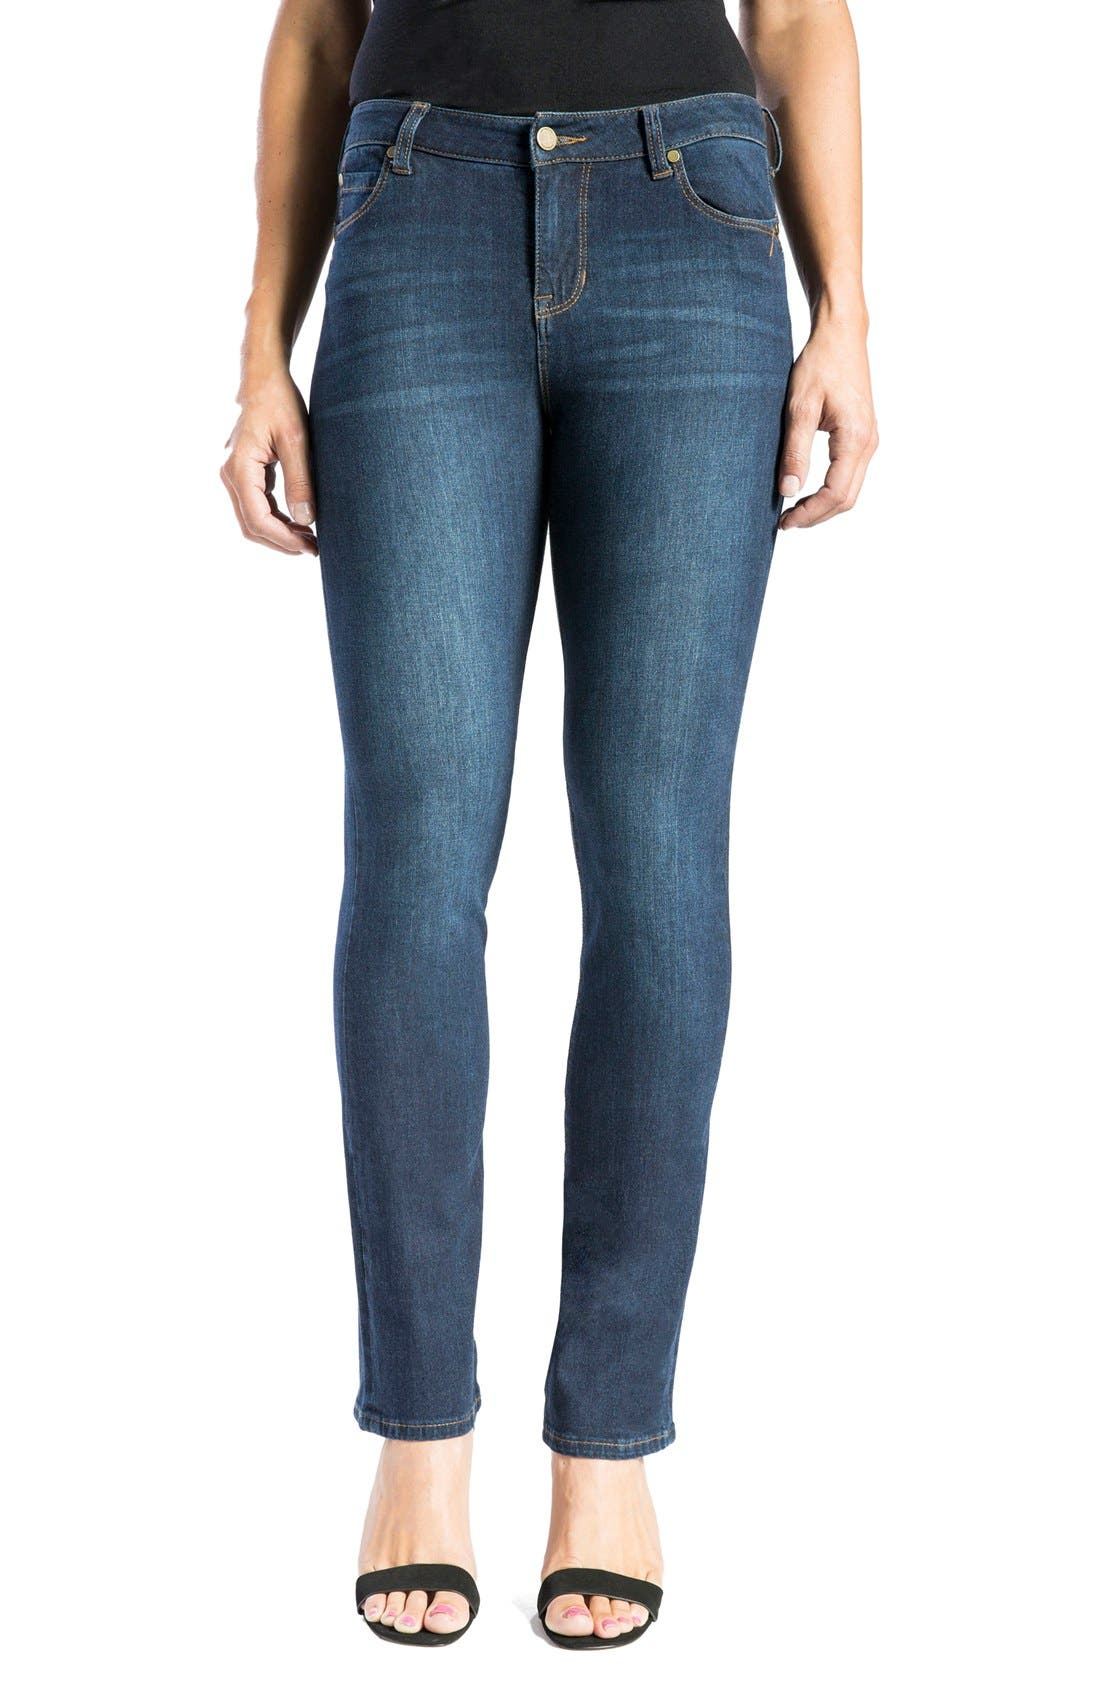 Alternate Image 1 Selected - Liverpool Jeans Company 'Remy - Hugger' Straight Leg Jeans (Corvus)